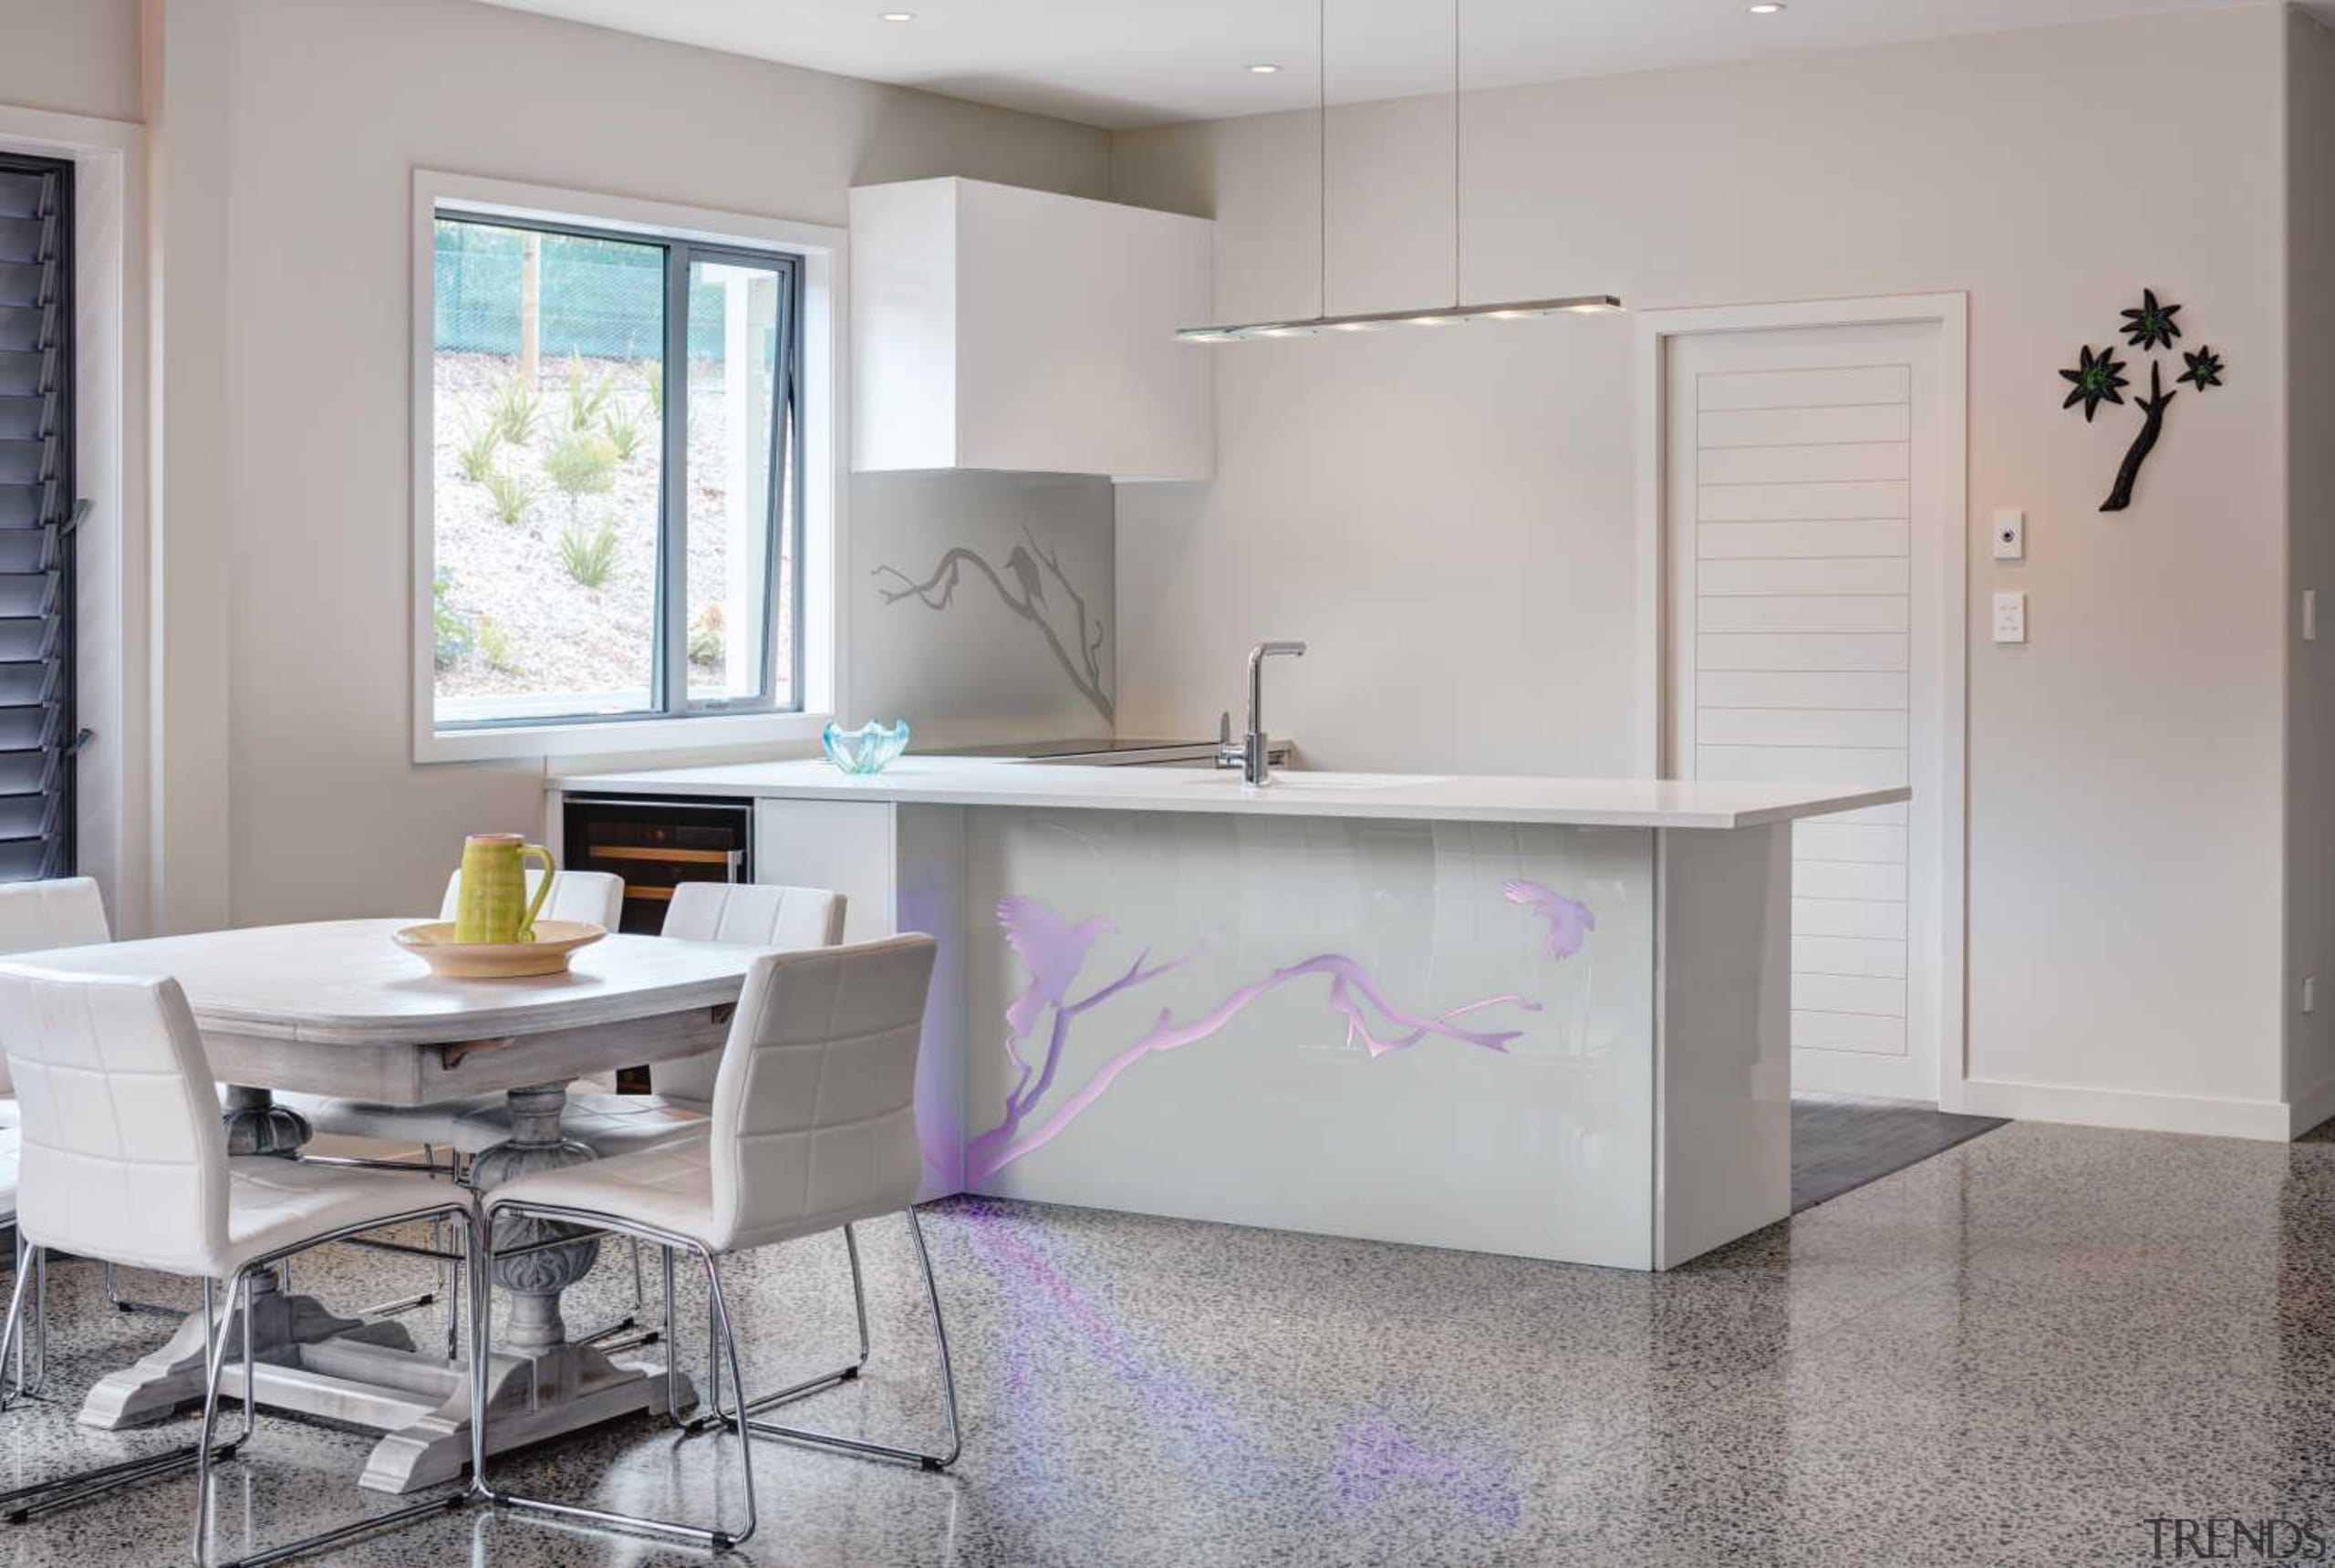 Every kitchen needs a hero and a vibrant countertop, floor, furniture, interior design, kitchen, product design, table, gray